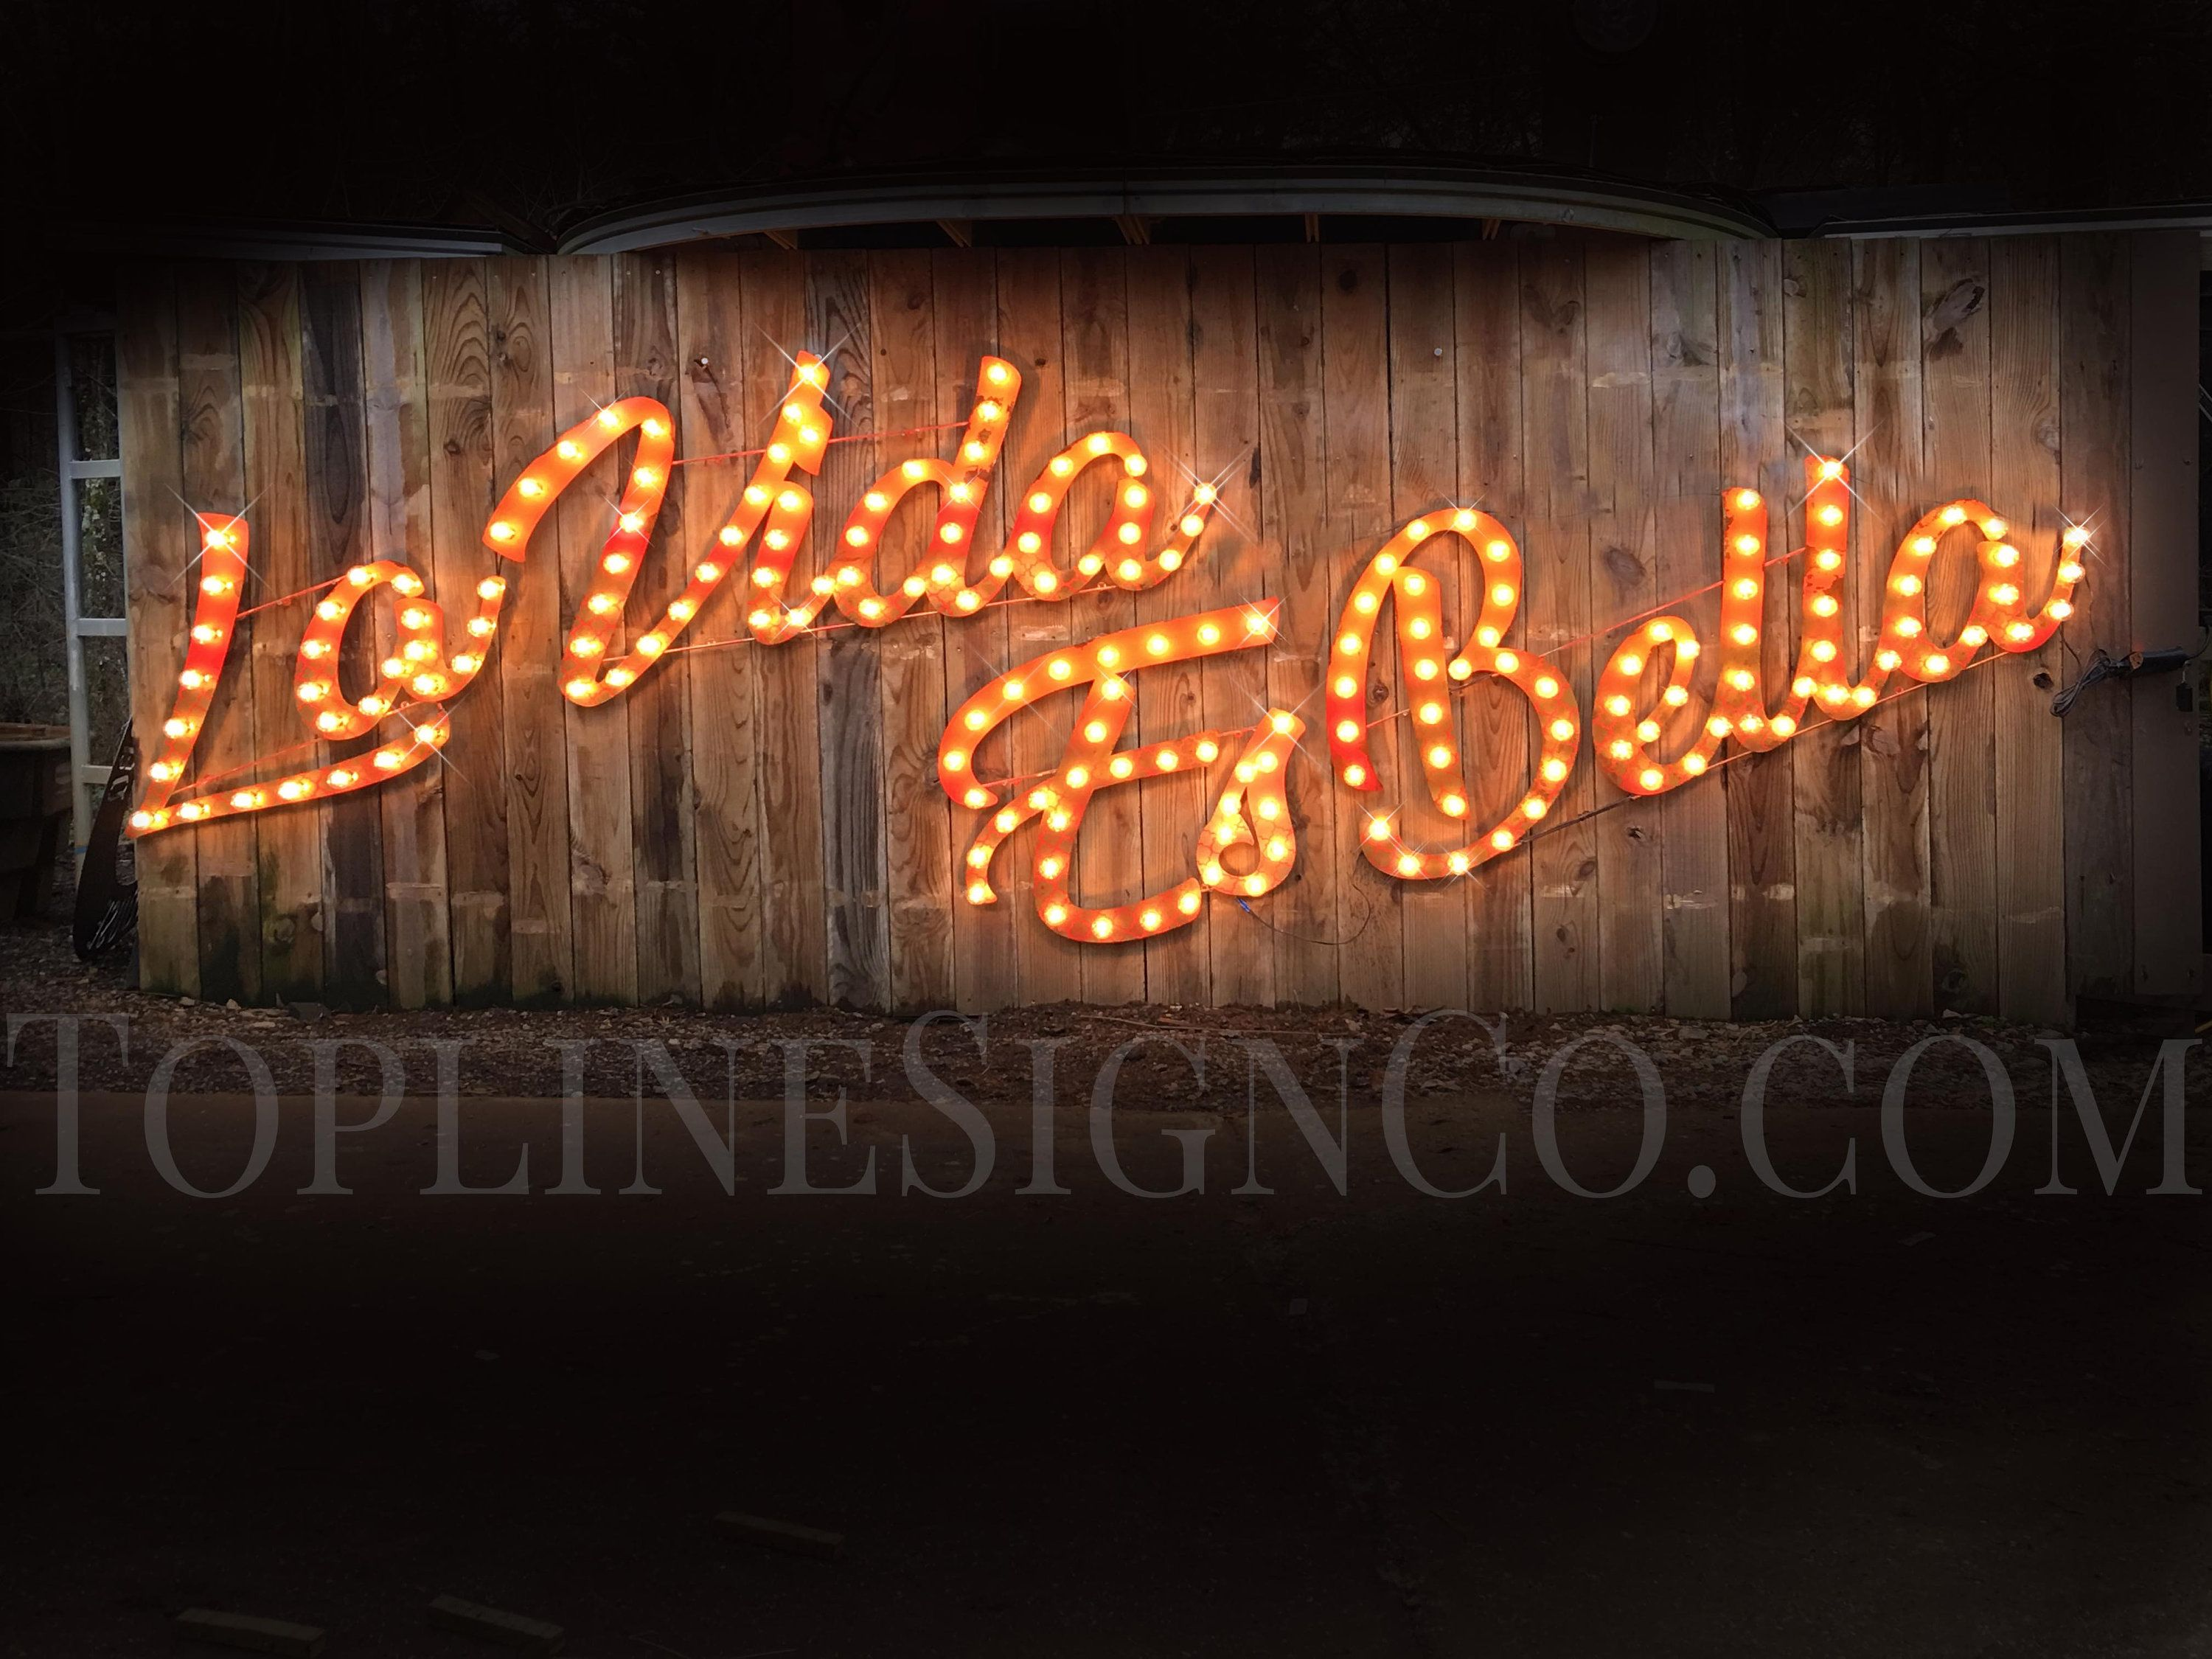 Custom Signs Marquee Signs Custom Signs Vintage Marquee Letters Business Sign Venue Sign Marquee Lighted Letters Vintage Style Signs In 2020 Vintage Marquee Letters Marquee Sign Lighted Marquee Letters